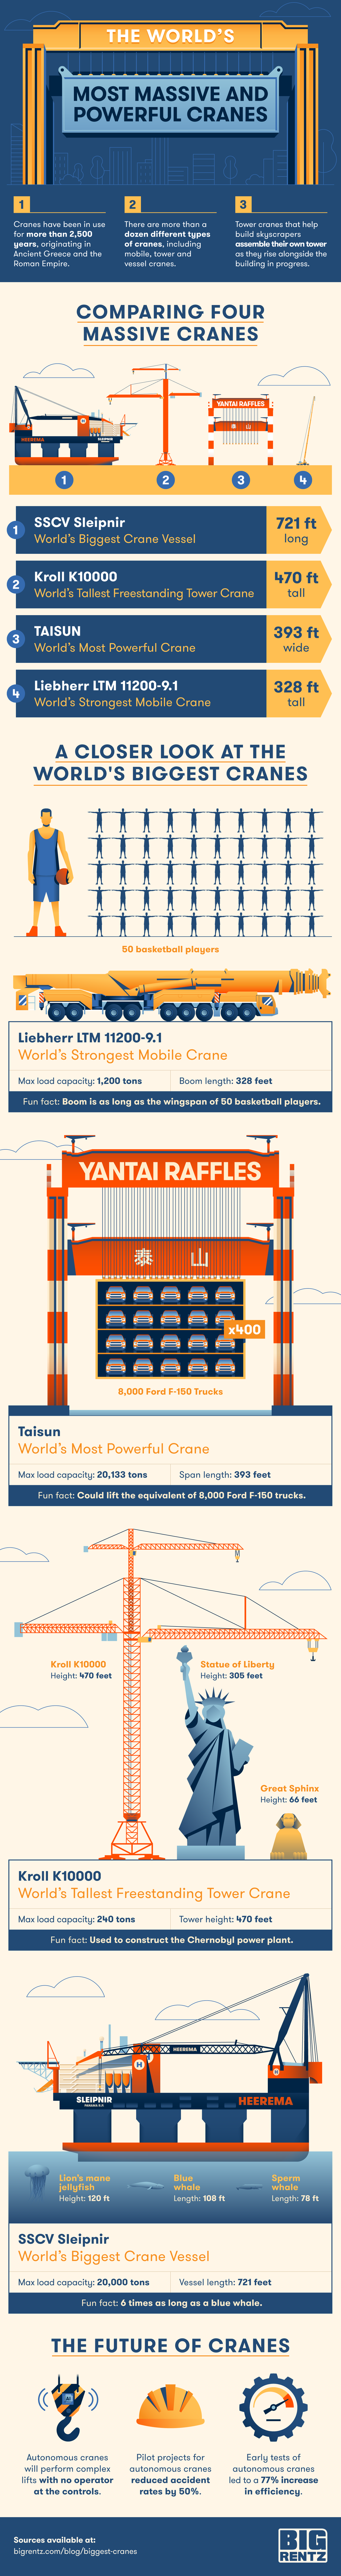 An infographic showing the world's most powerful cranes and interesting facts about them.